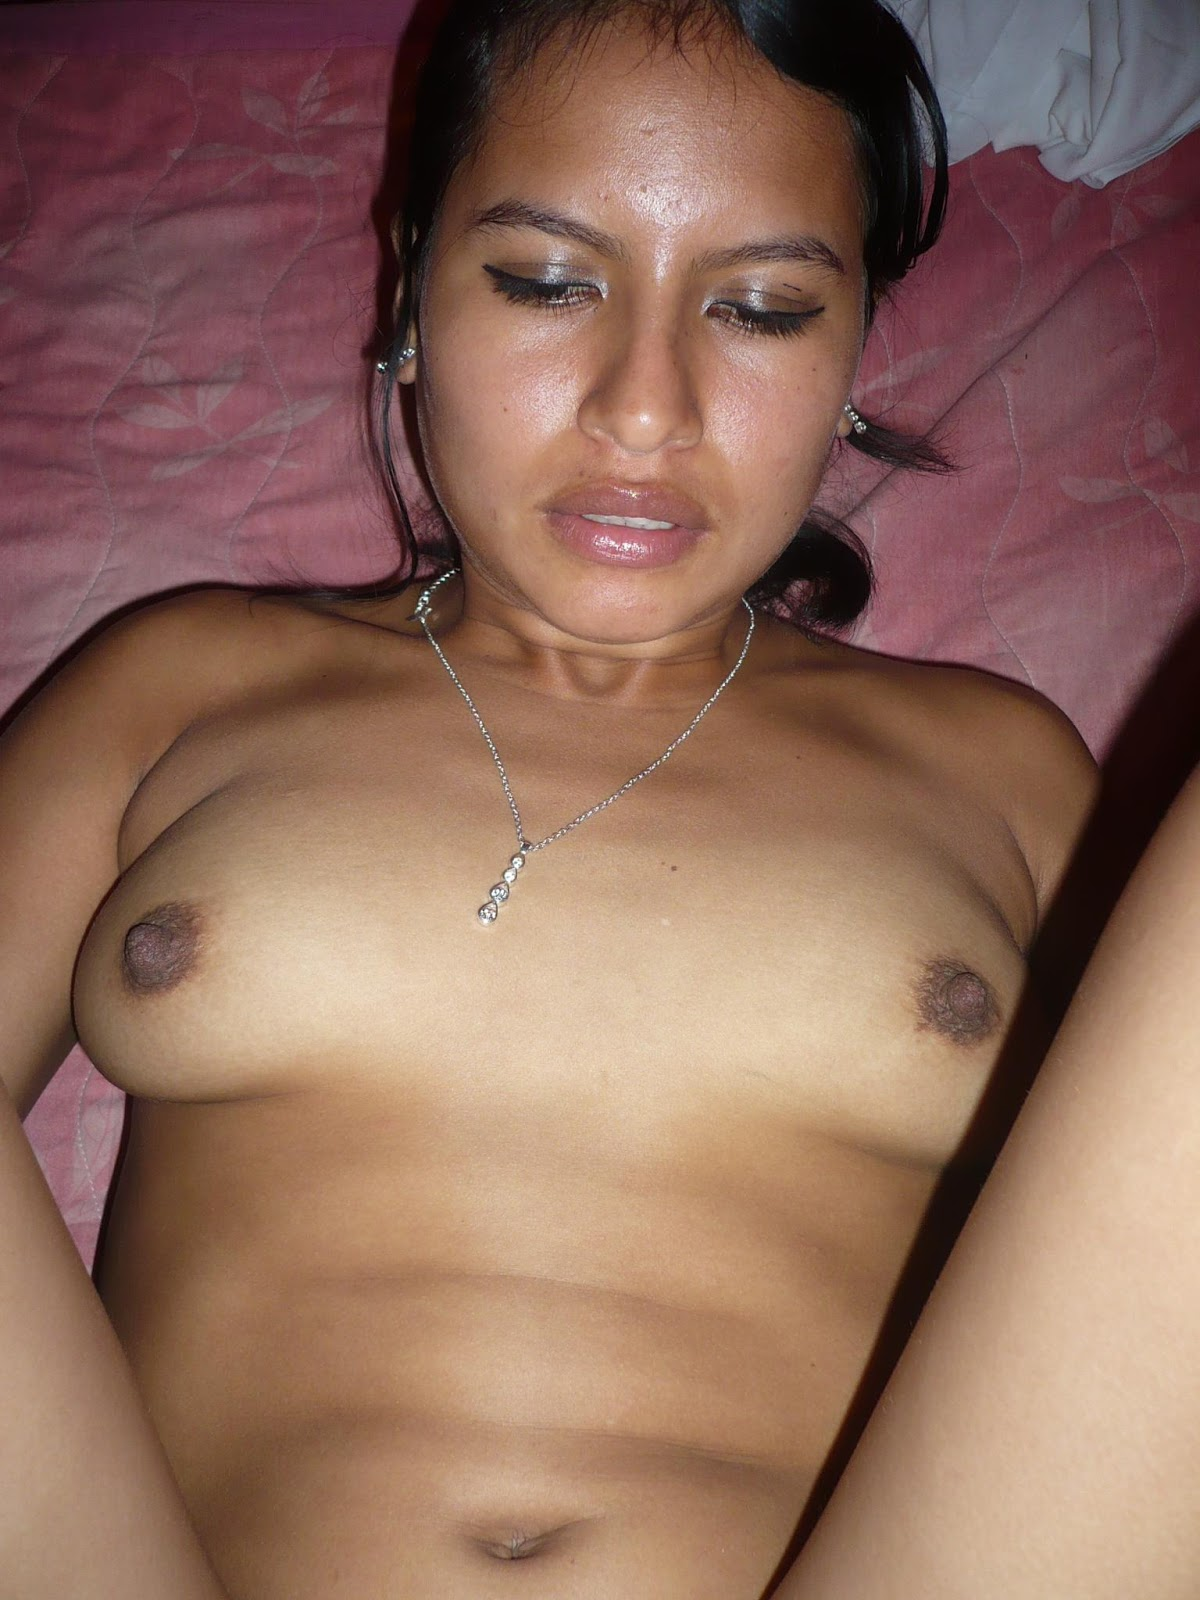 Amateur latin mexicana en el patio parte 04 - 2 10